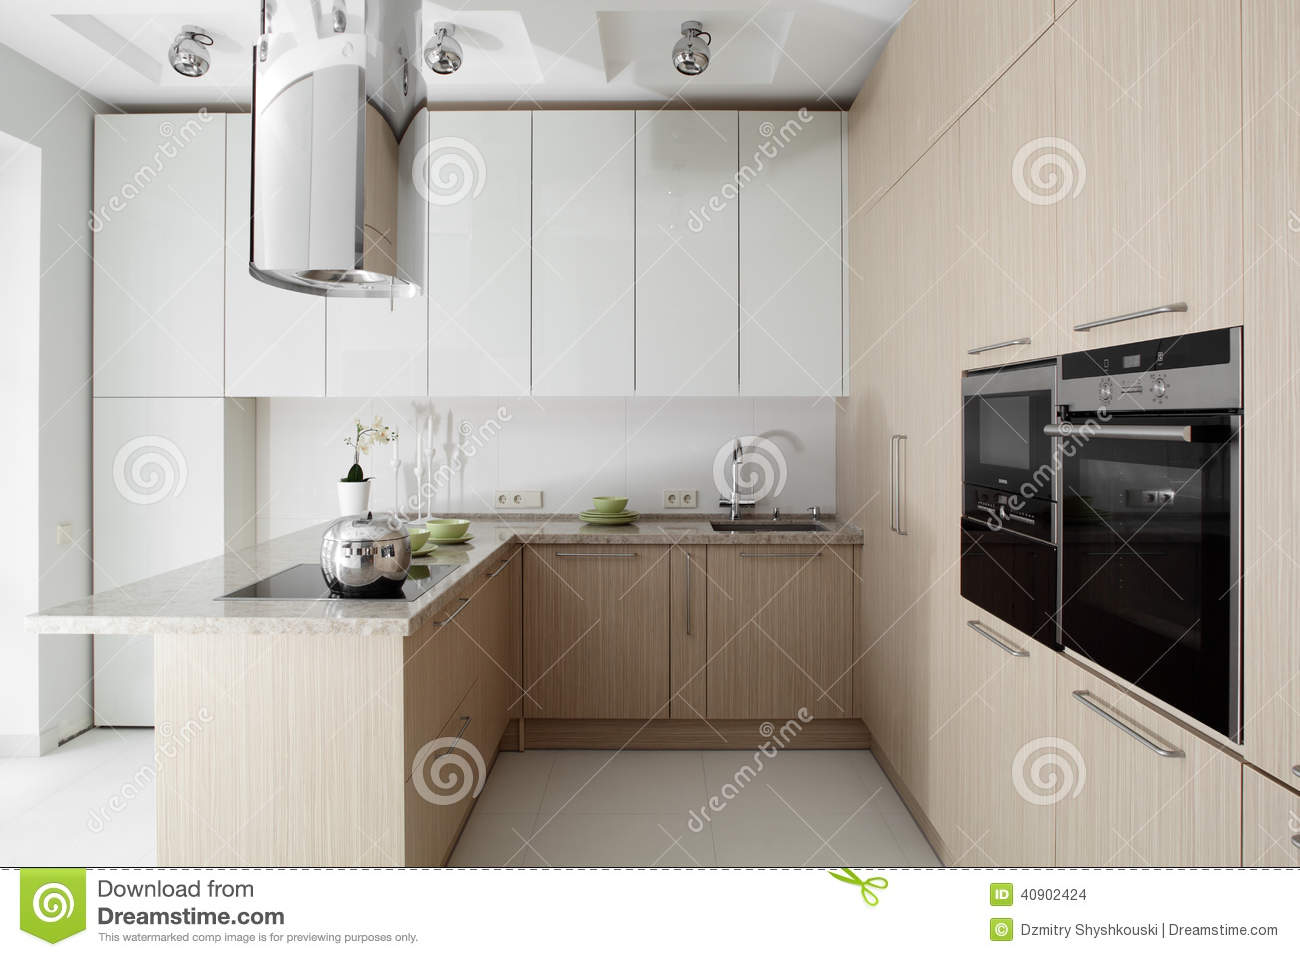 Interior Of Modern European Kitchen Stock Photo - Image of ...